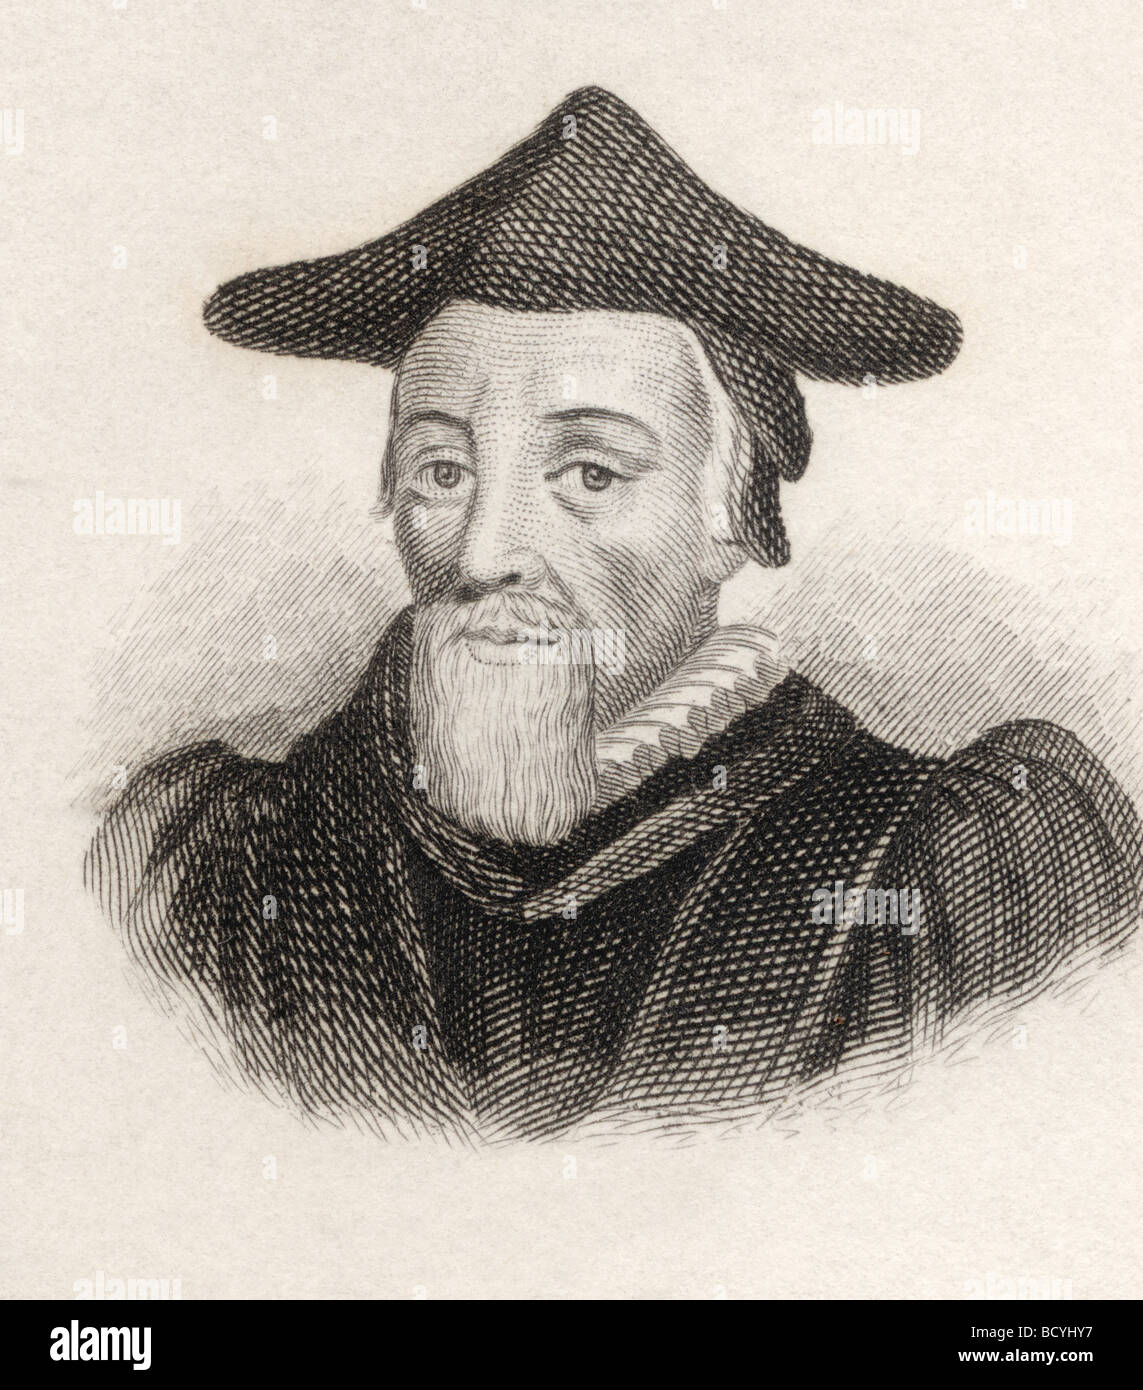 Richard Hooker 1554 to 1600.  Anglican priest and influential theologian. - Stock Image